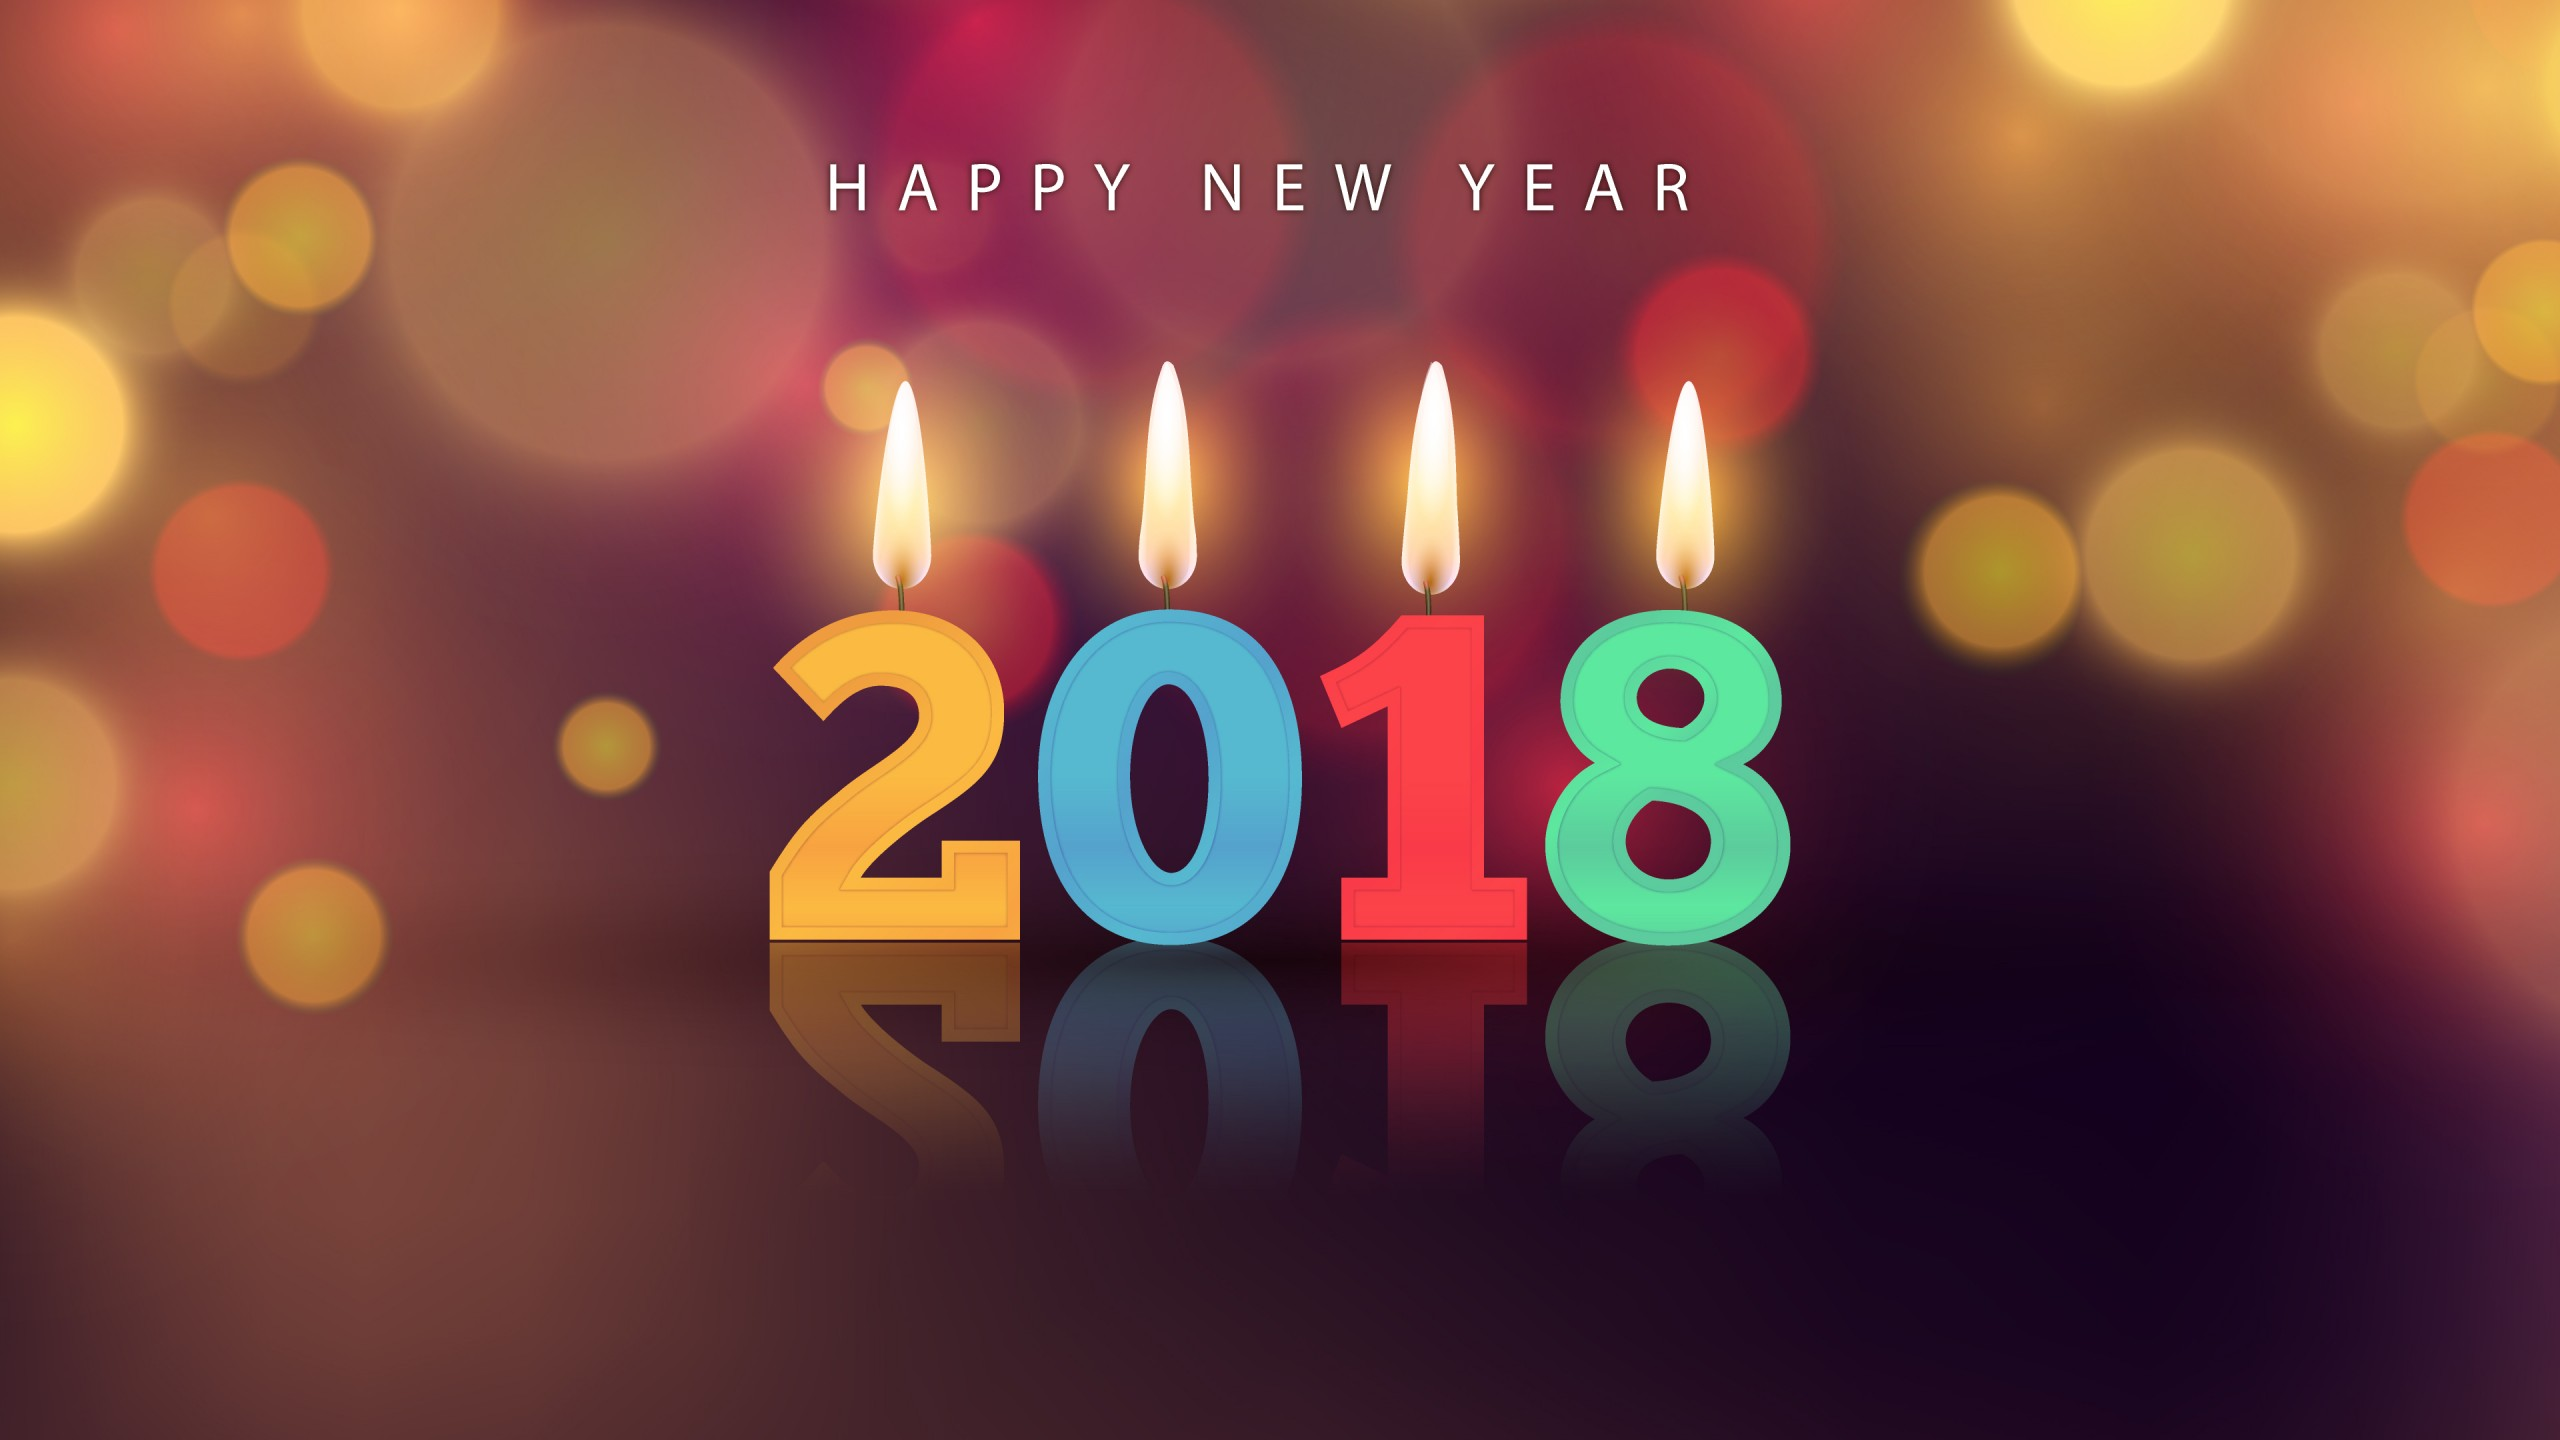 download new year image for whatsapp dp profile pic